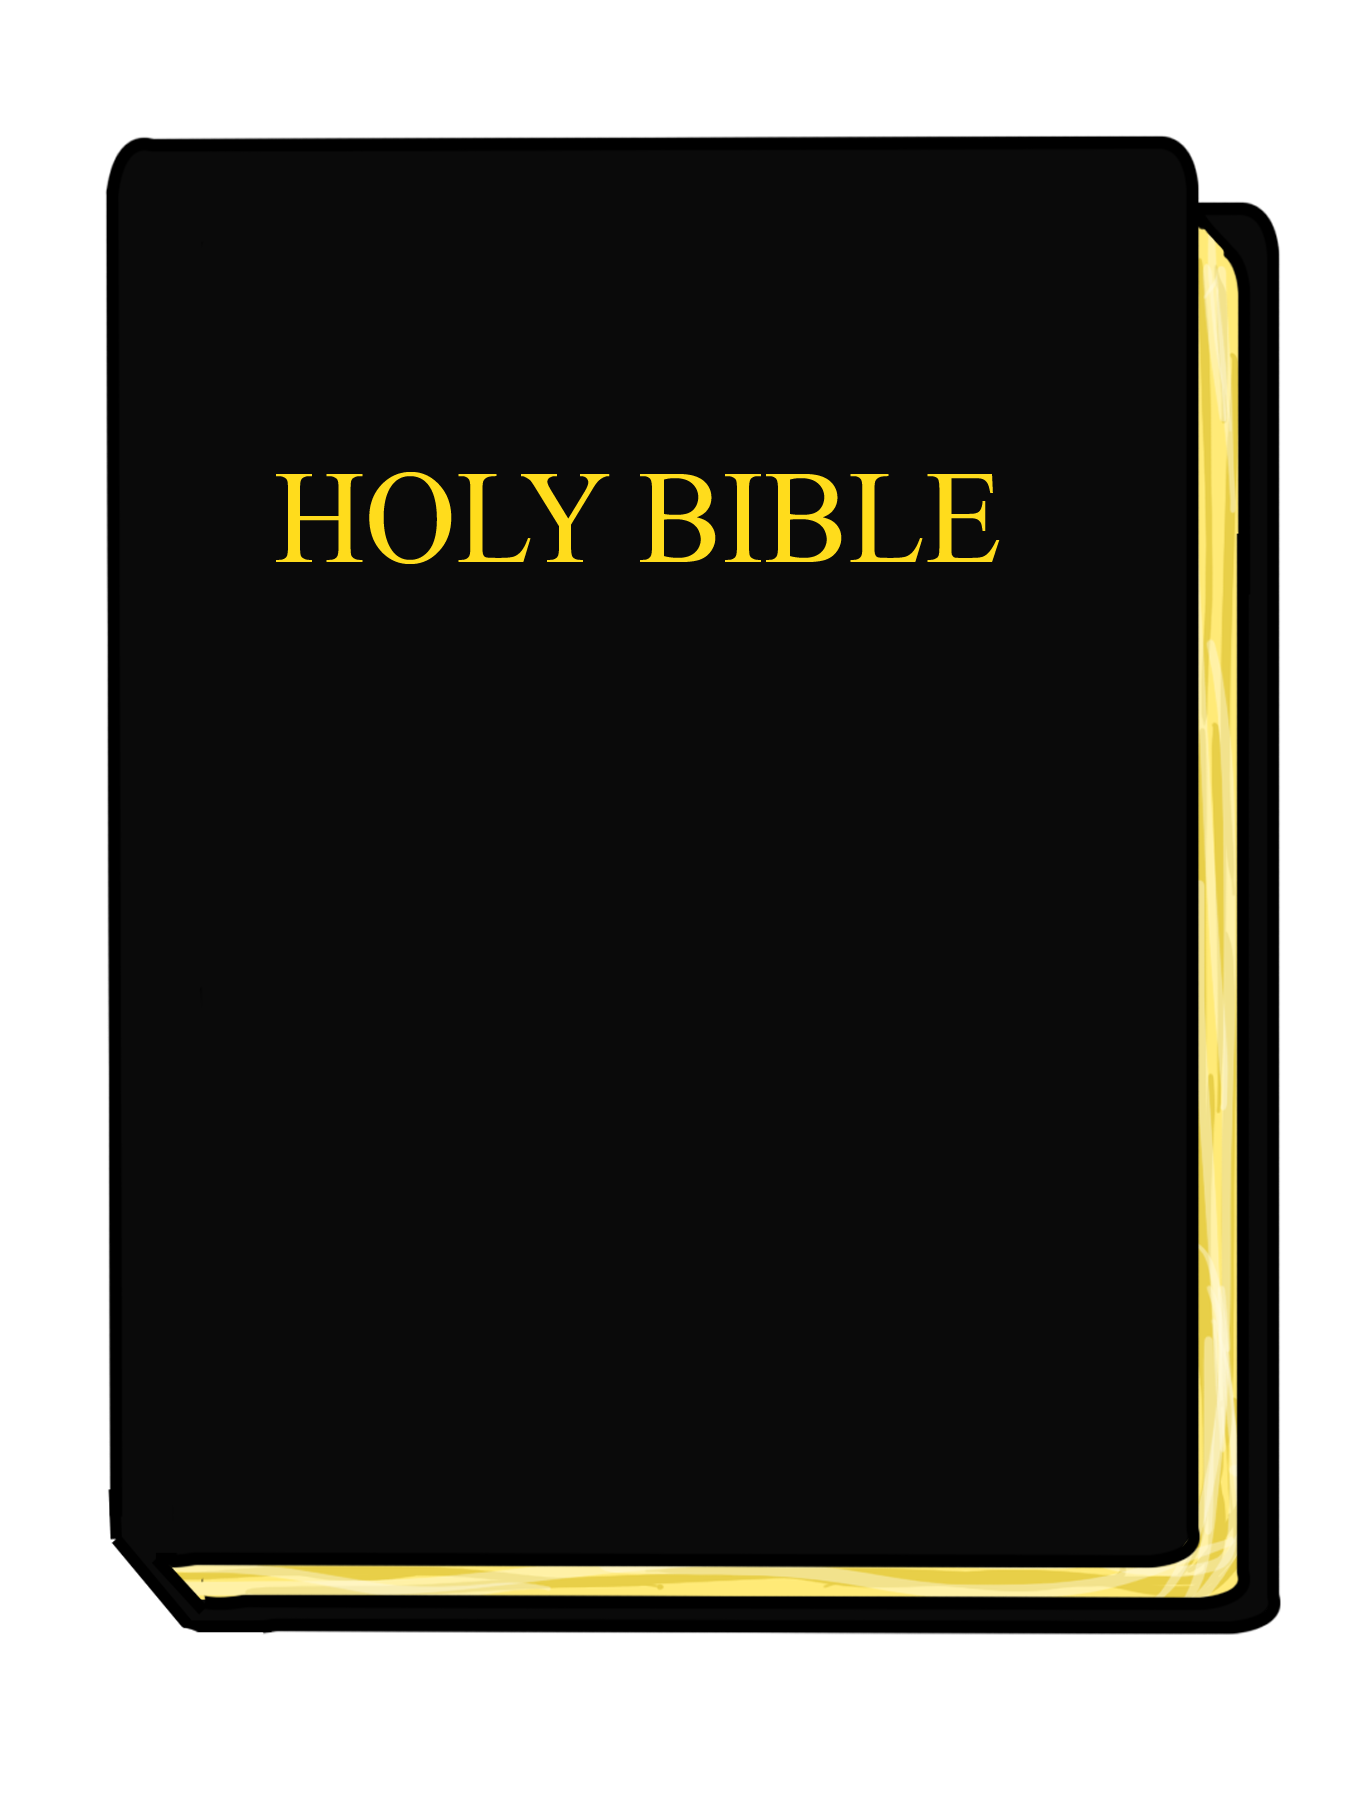 free to use public domain bible clip art bible pinterest rh pinterest com holy bible clip art in red and black holy bible clipart free